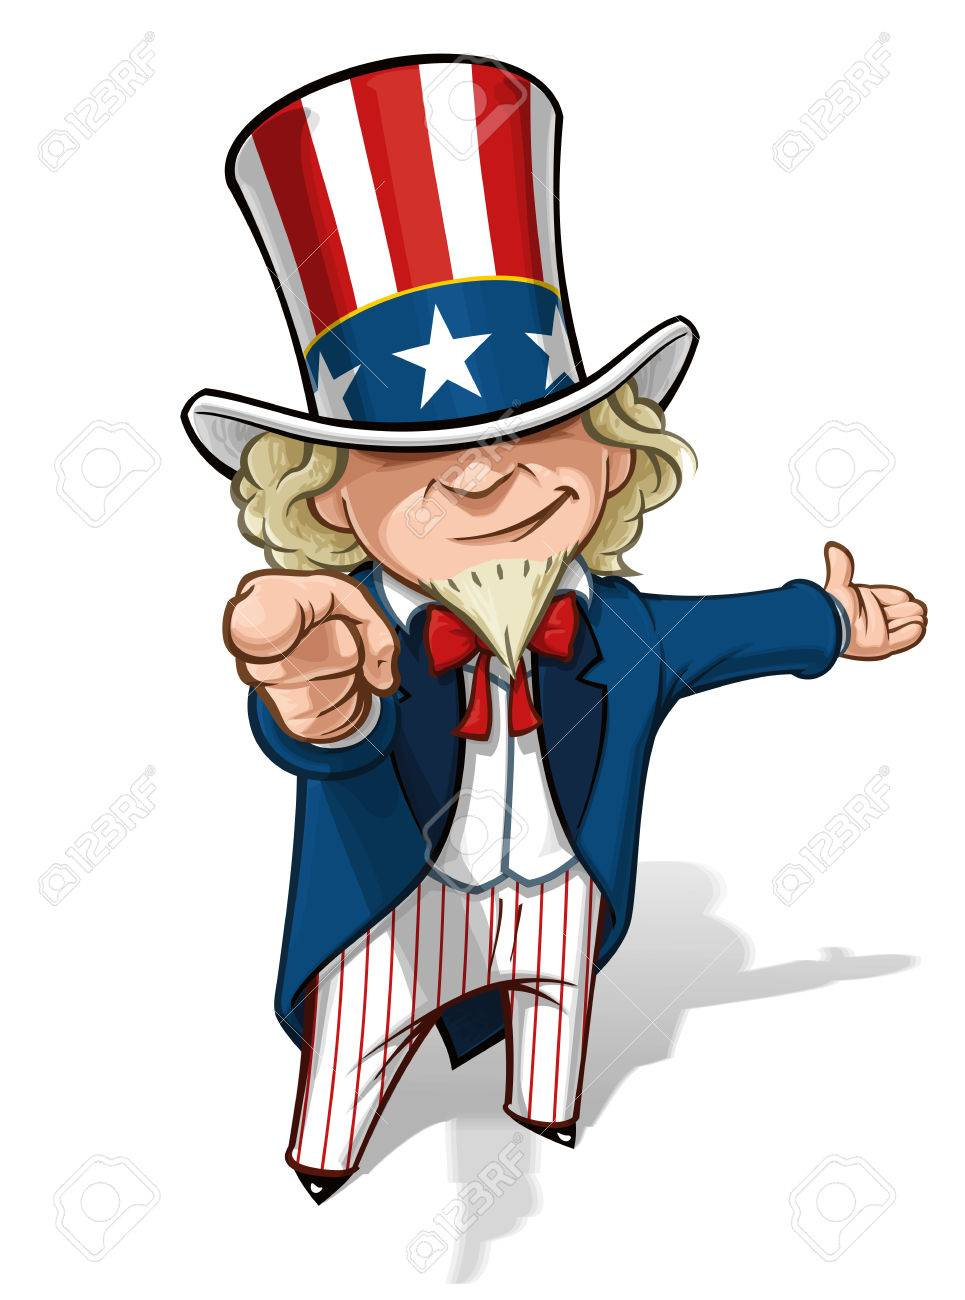 clean cut overview cartoon illustration of uncle sam pointing rh 123rf com